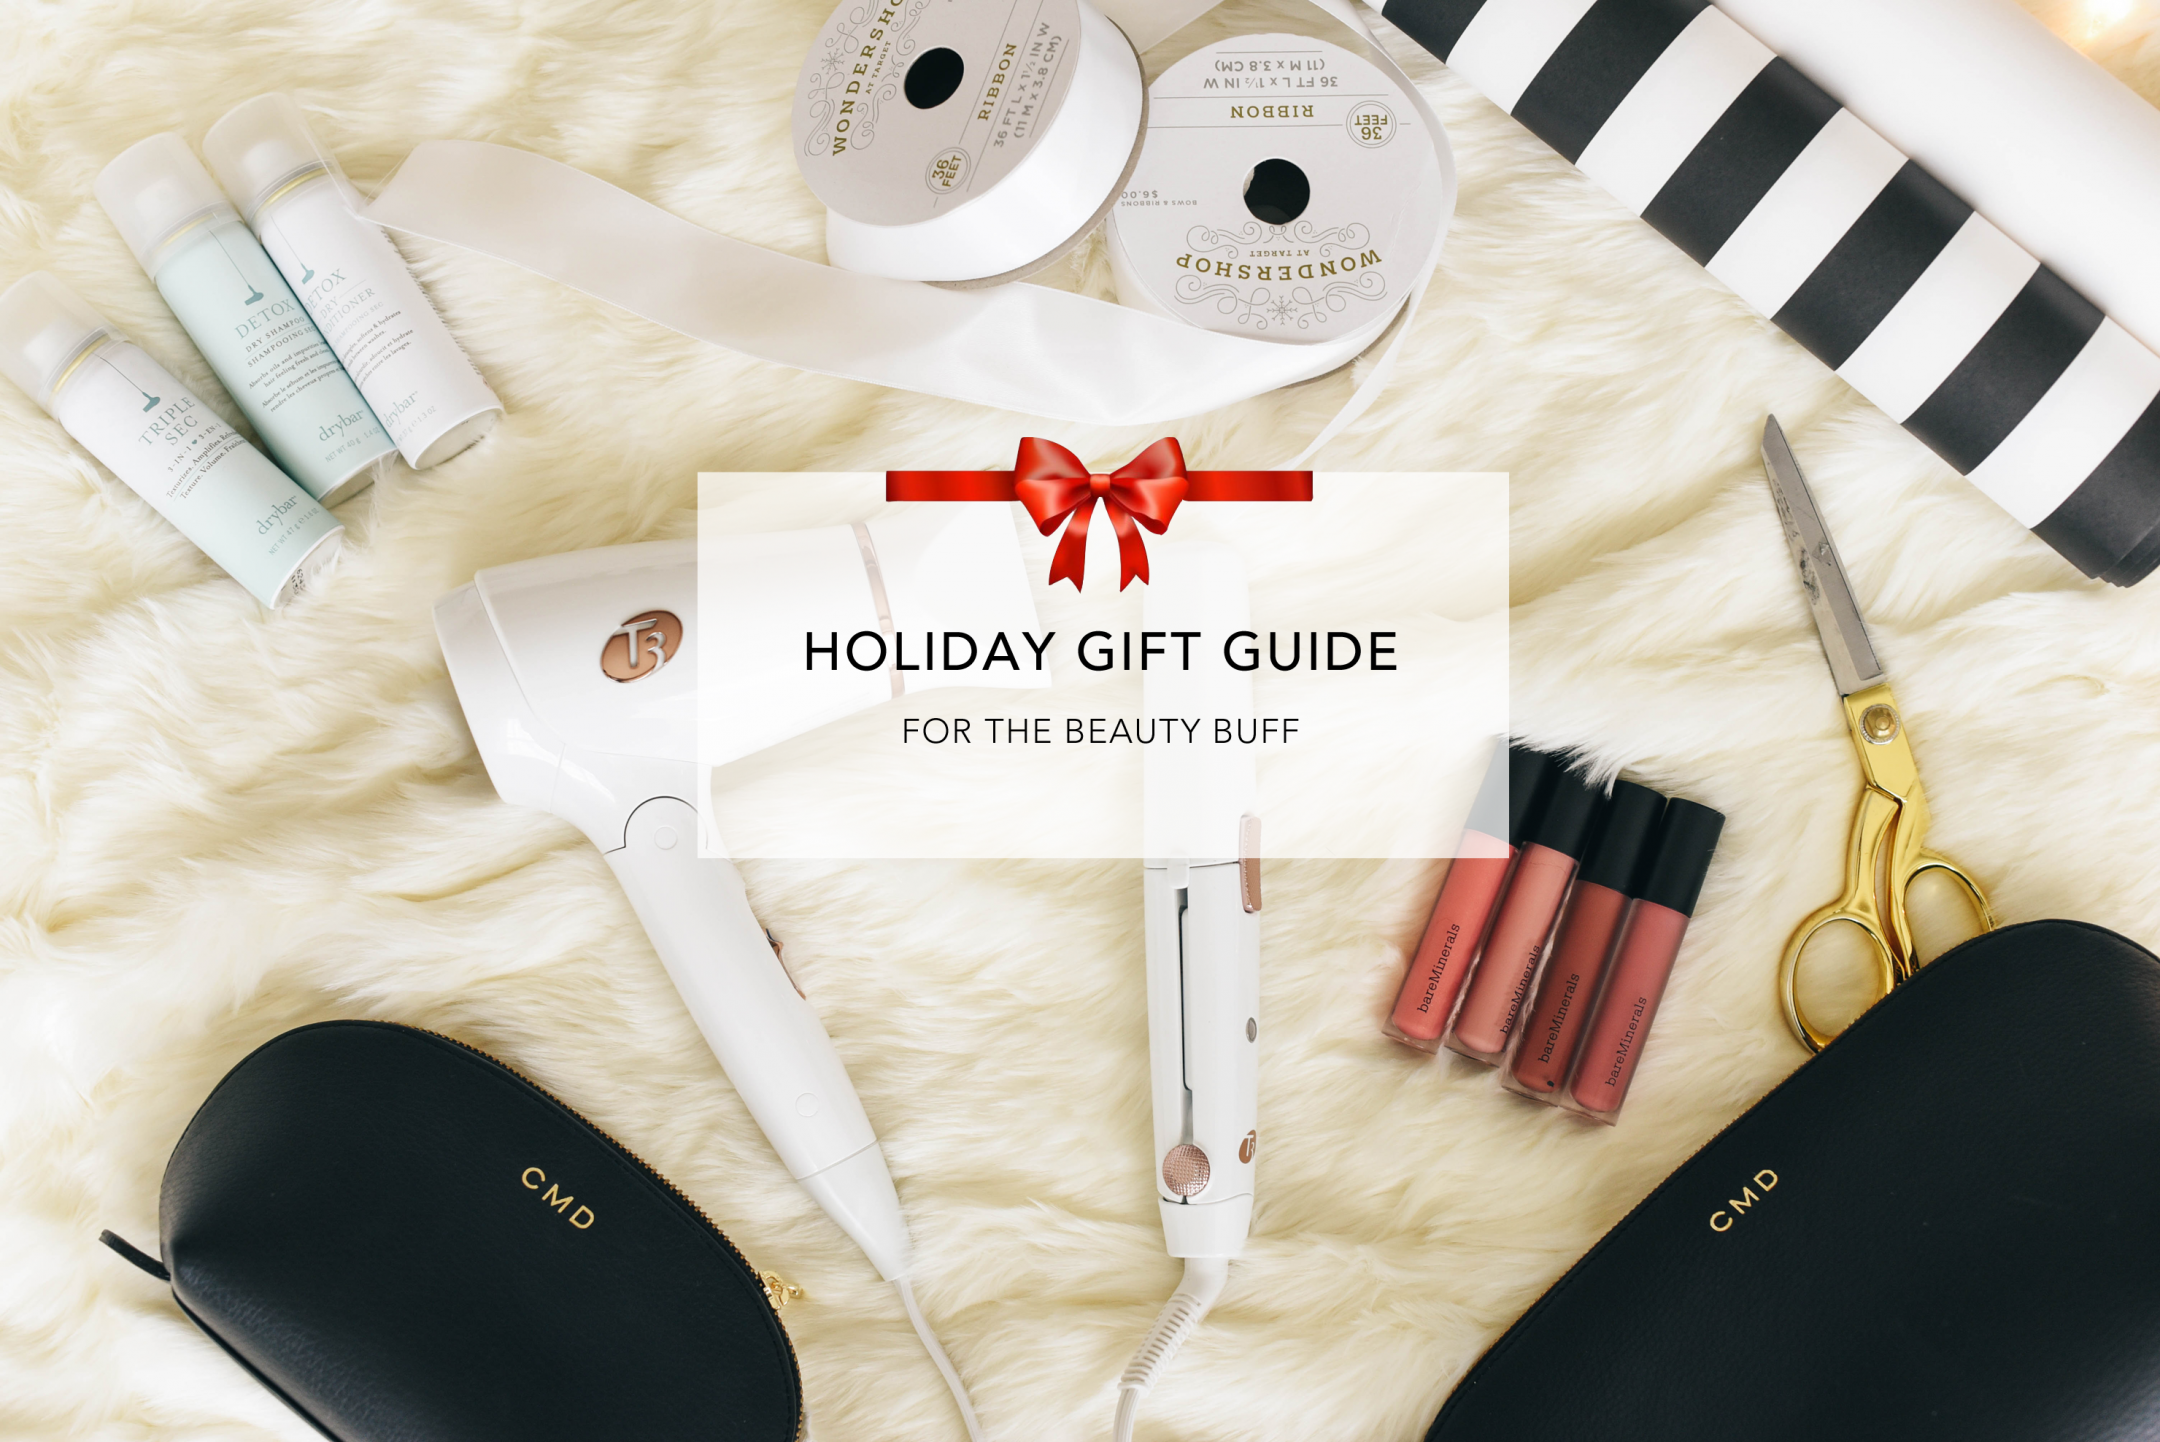 holiday-gift-guide-for-the-beauty-buff-2